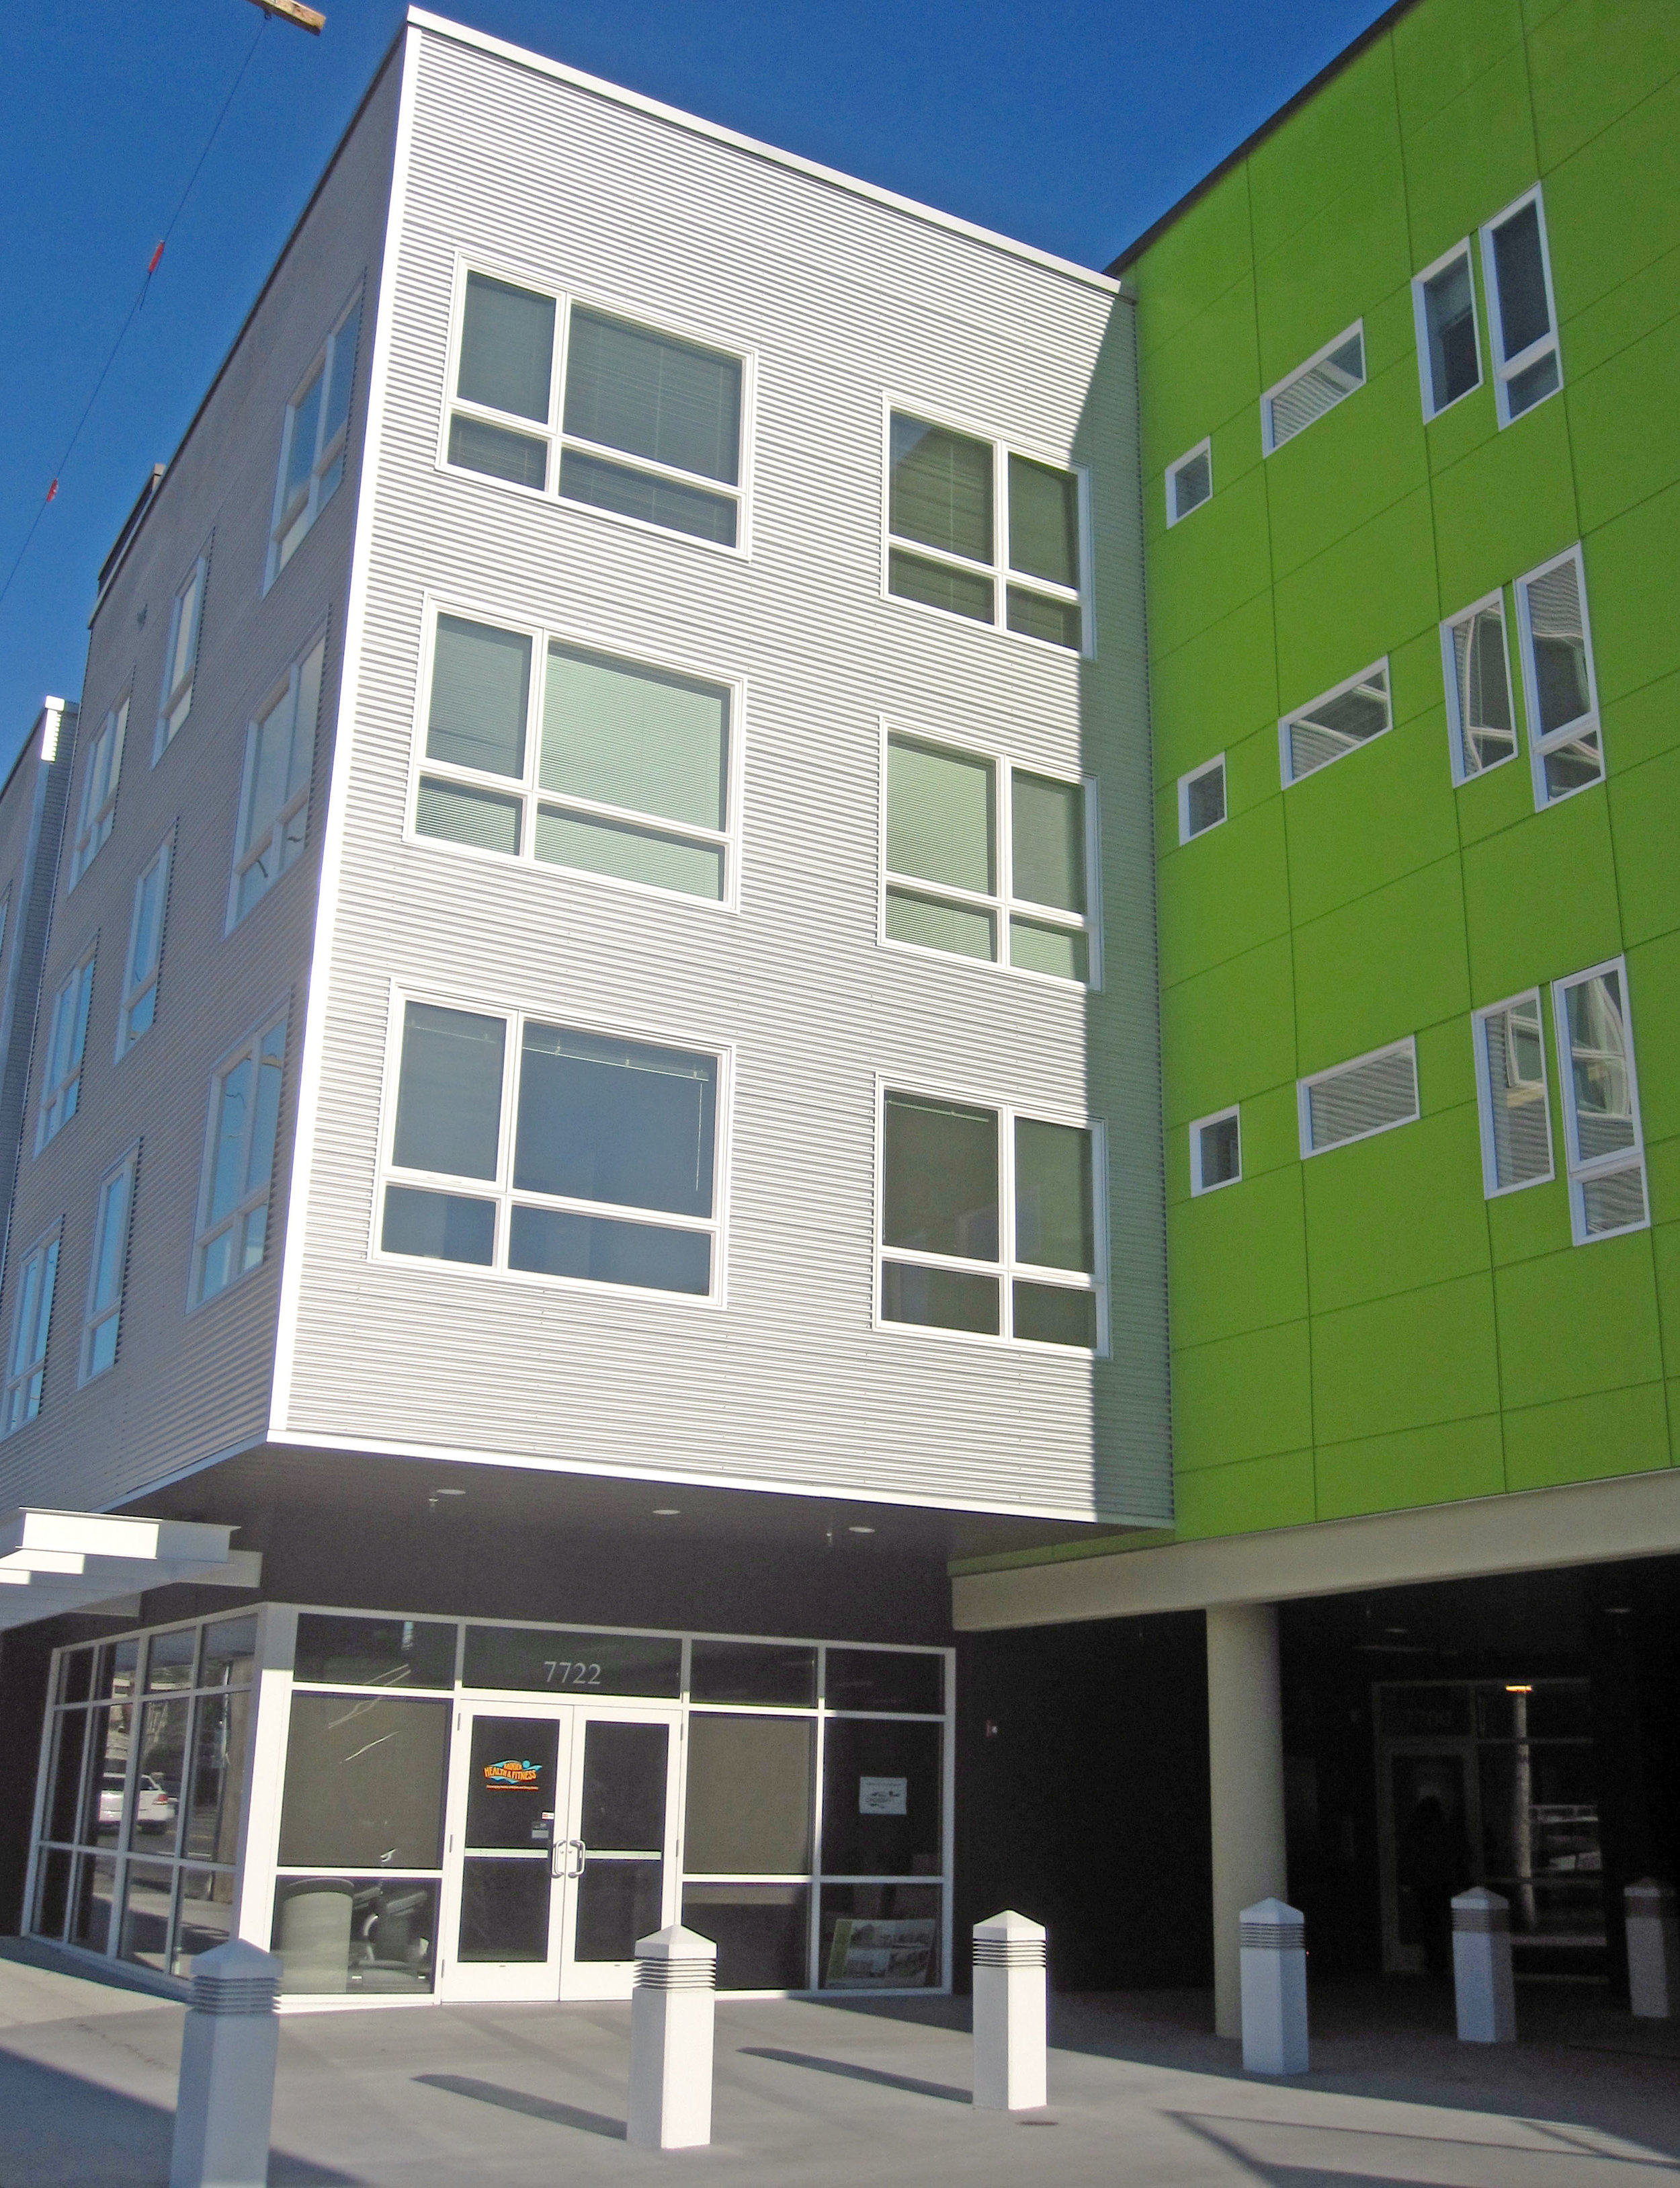 The Facility - Find us located on the ground floor of Emerald City Commons, constructed in 2013.